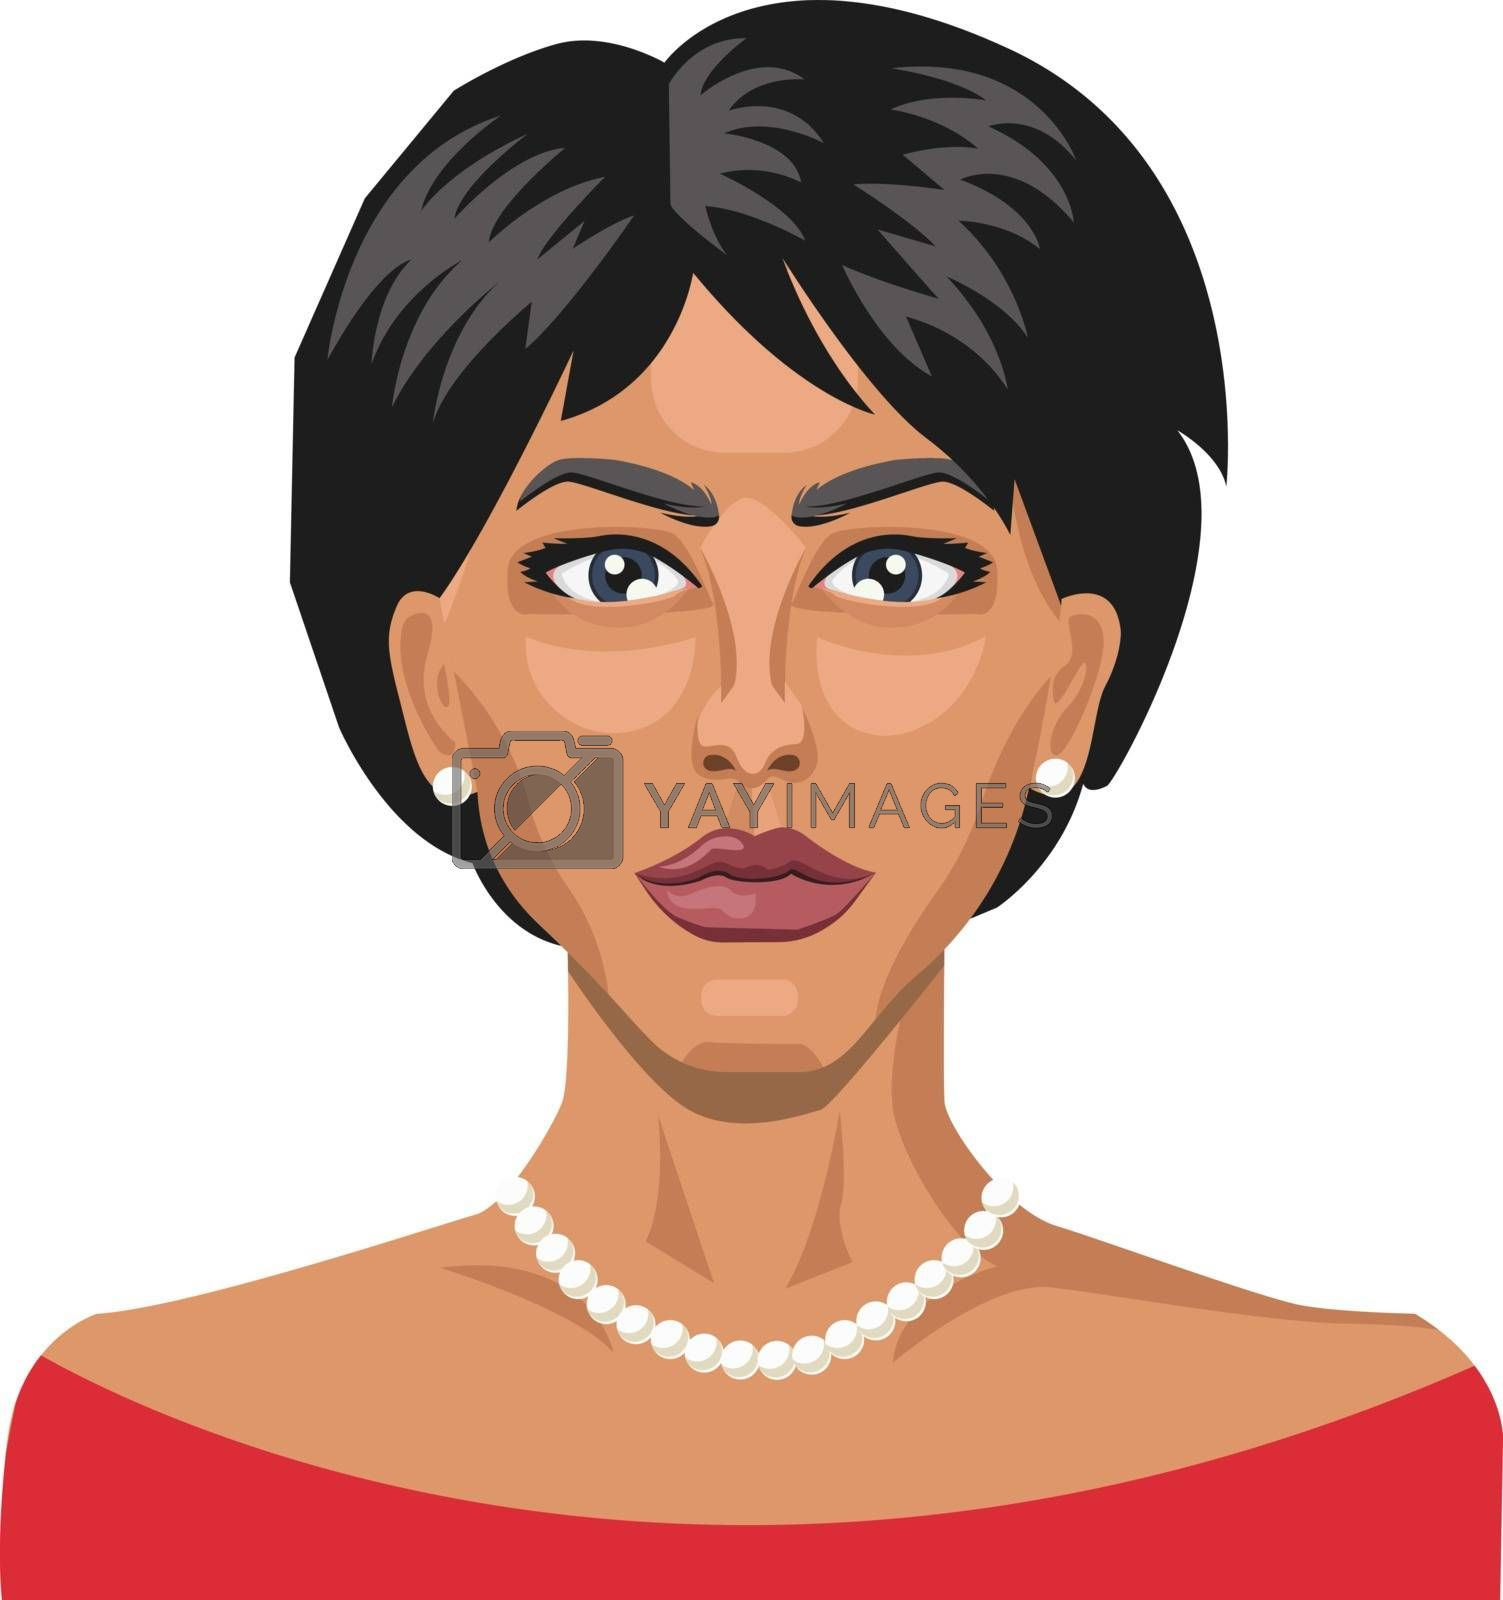 Royalty free image of Pretty lady with short hair illustration vector on white backgro by Morphart